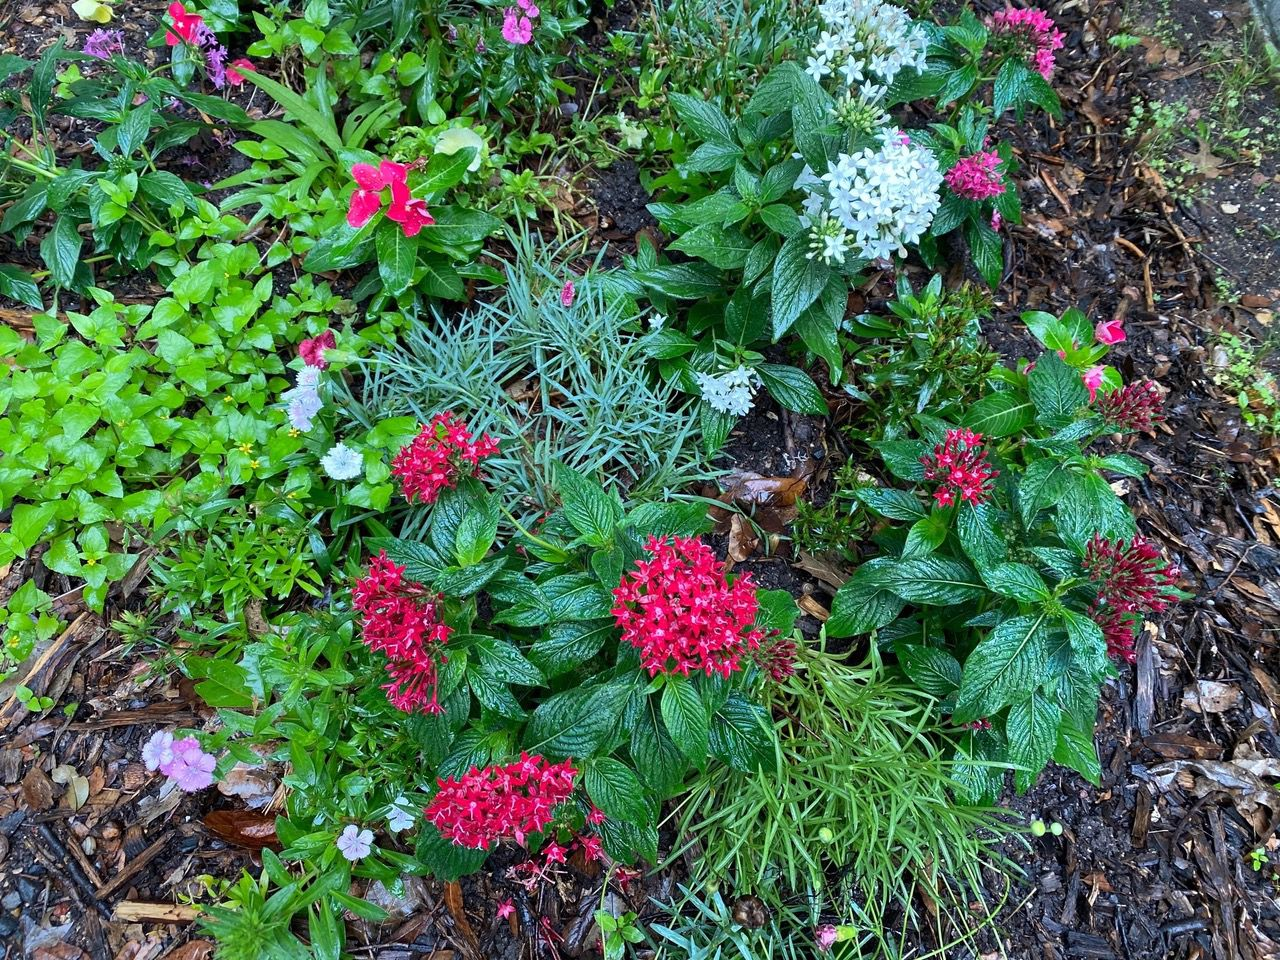 Pentas can be combined with other colors and textures in a mixed planting.